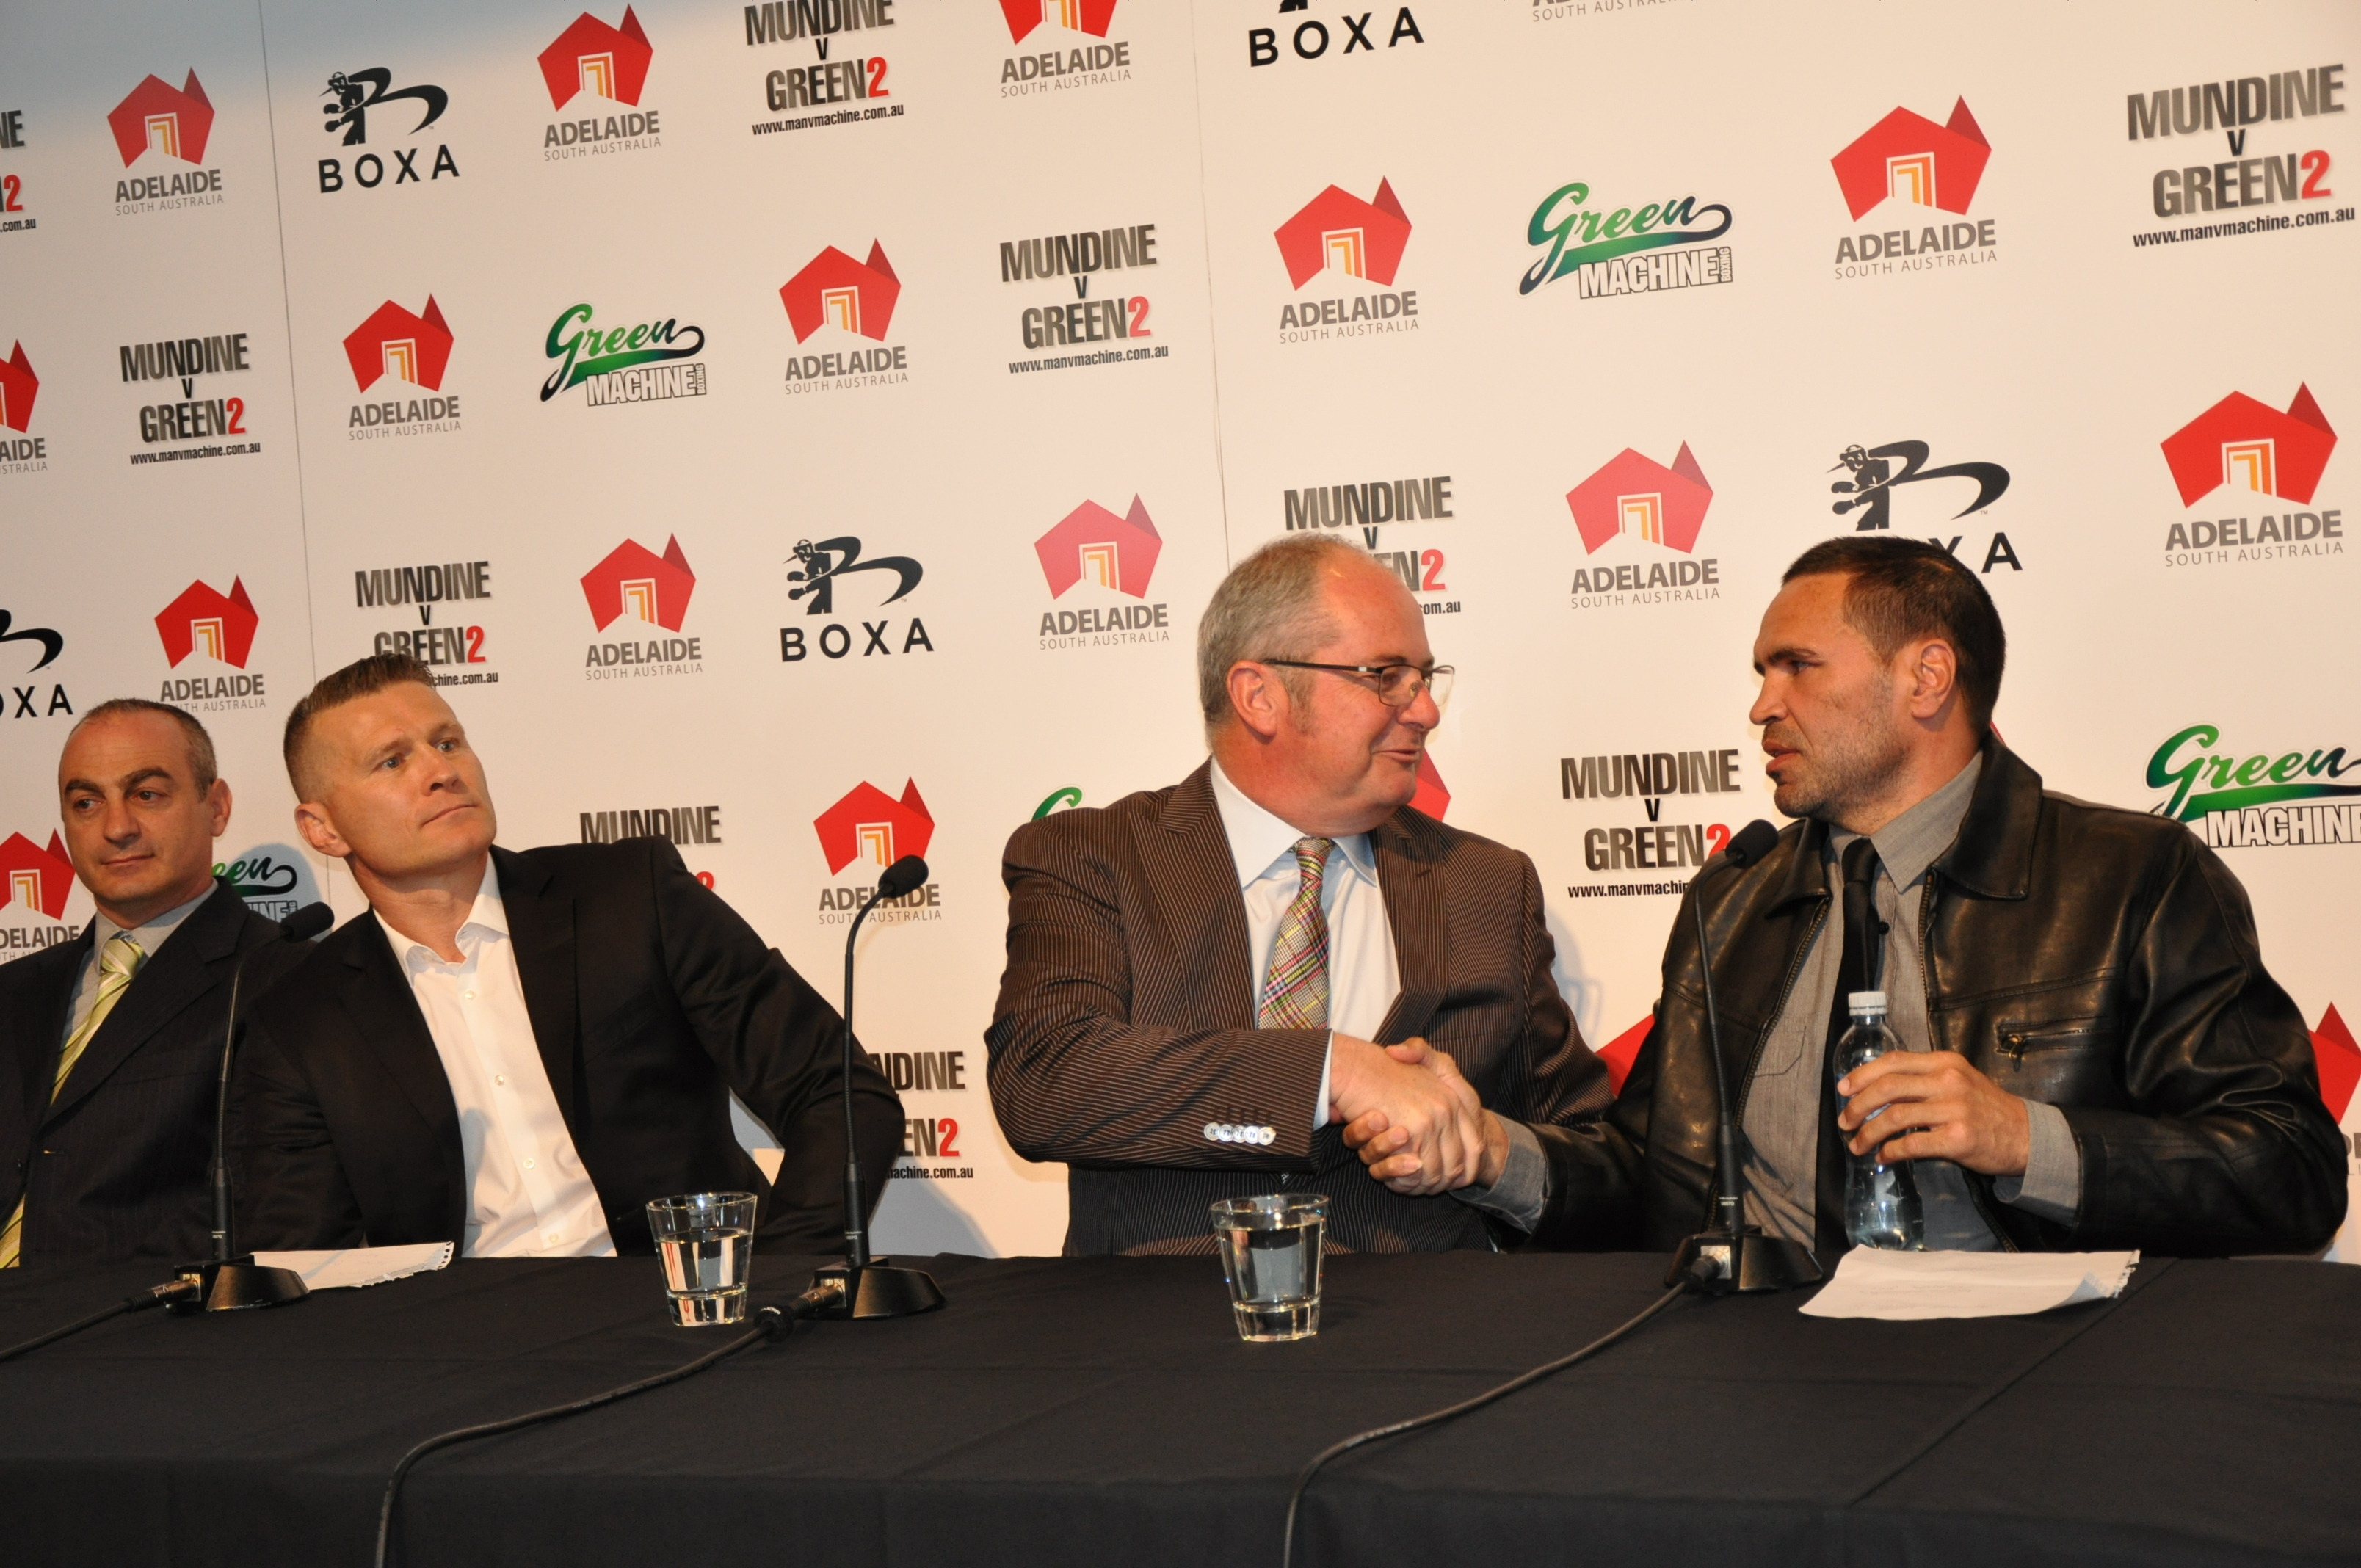 Tourism Minister Leon Bignell (centre) at today's announcement with Danny Green (left) and Anthony Mundine (right). Photo: AAP/Rick Goodman